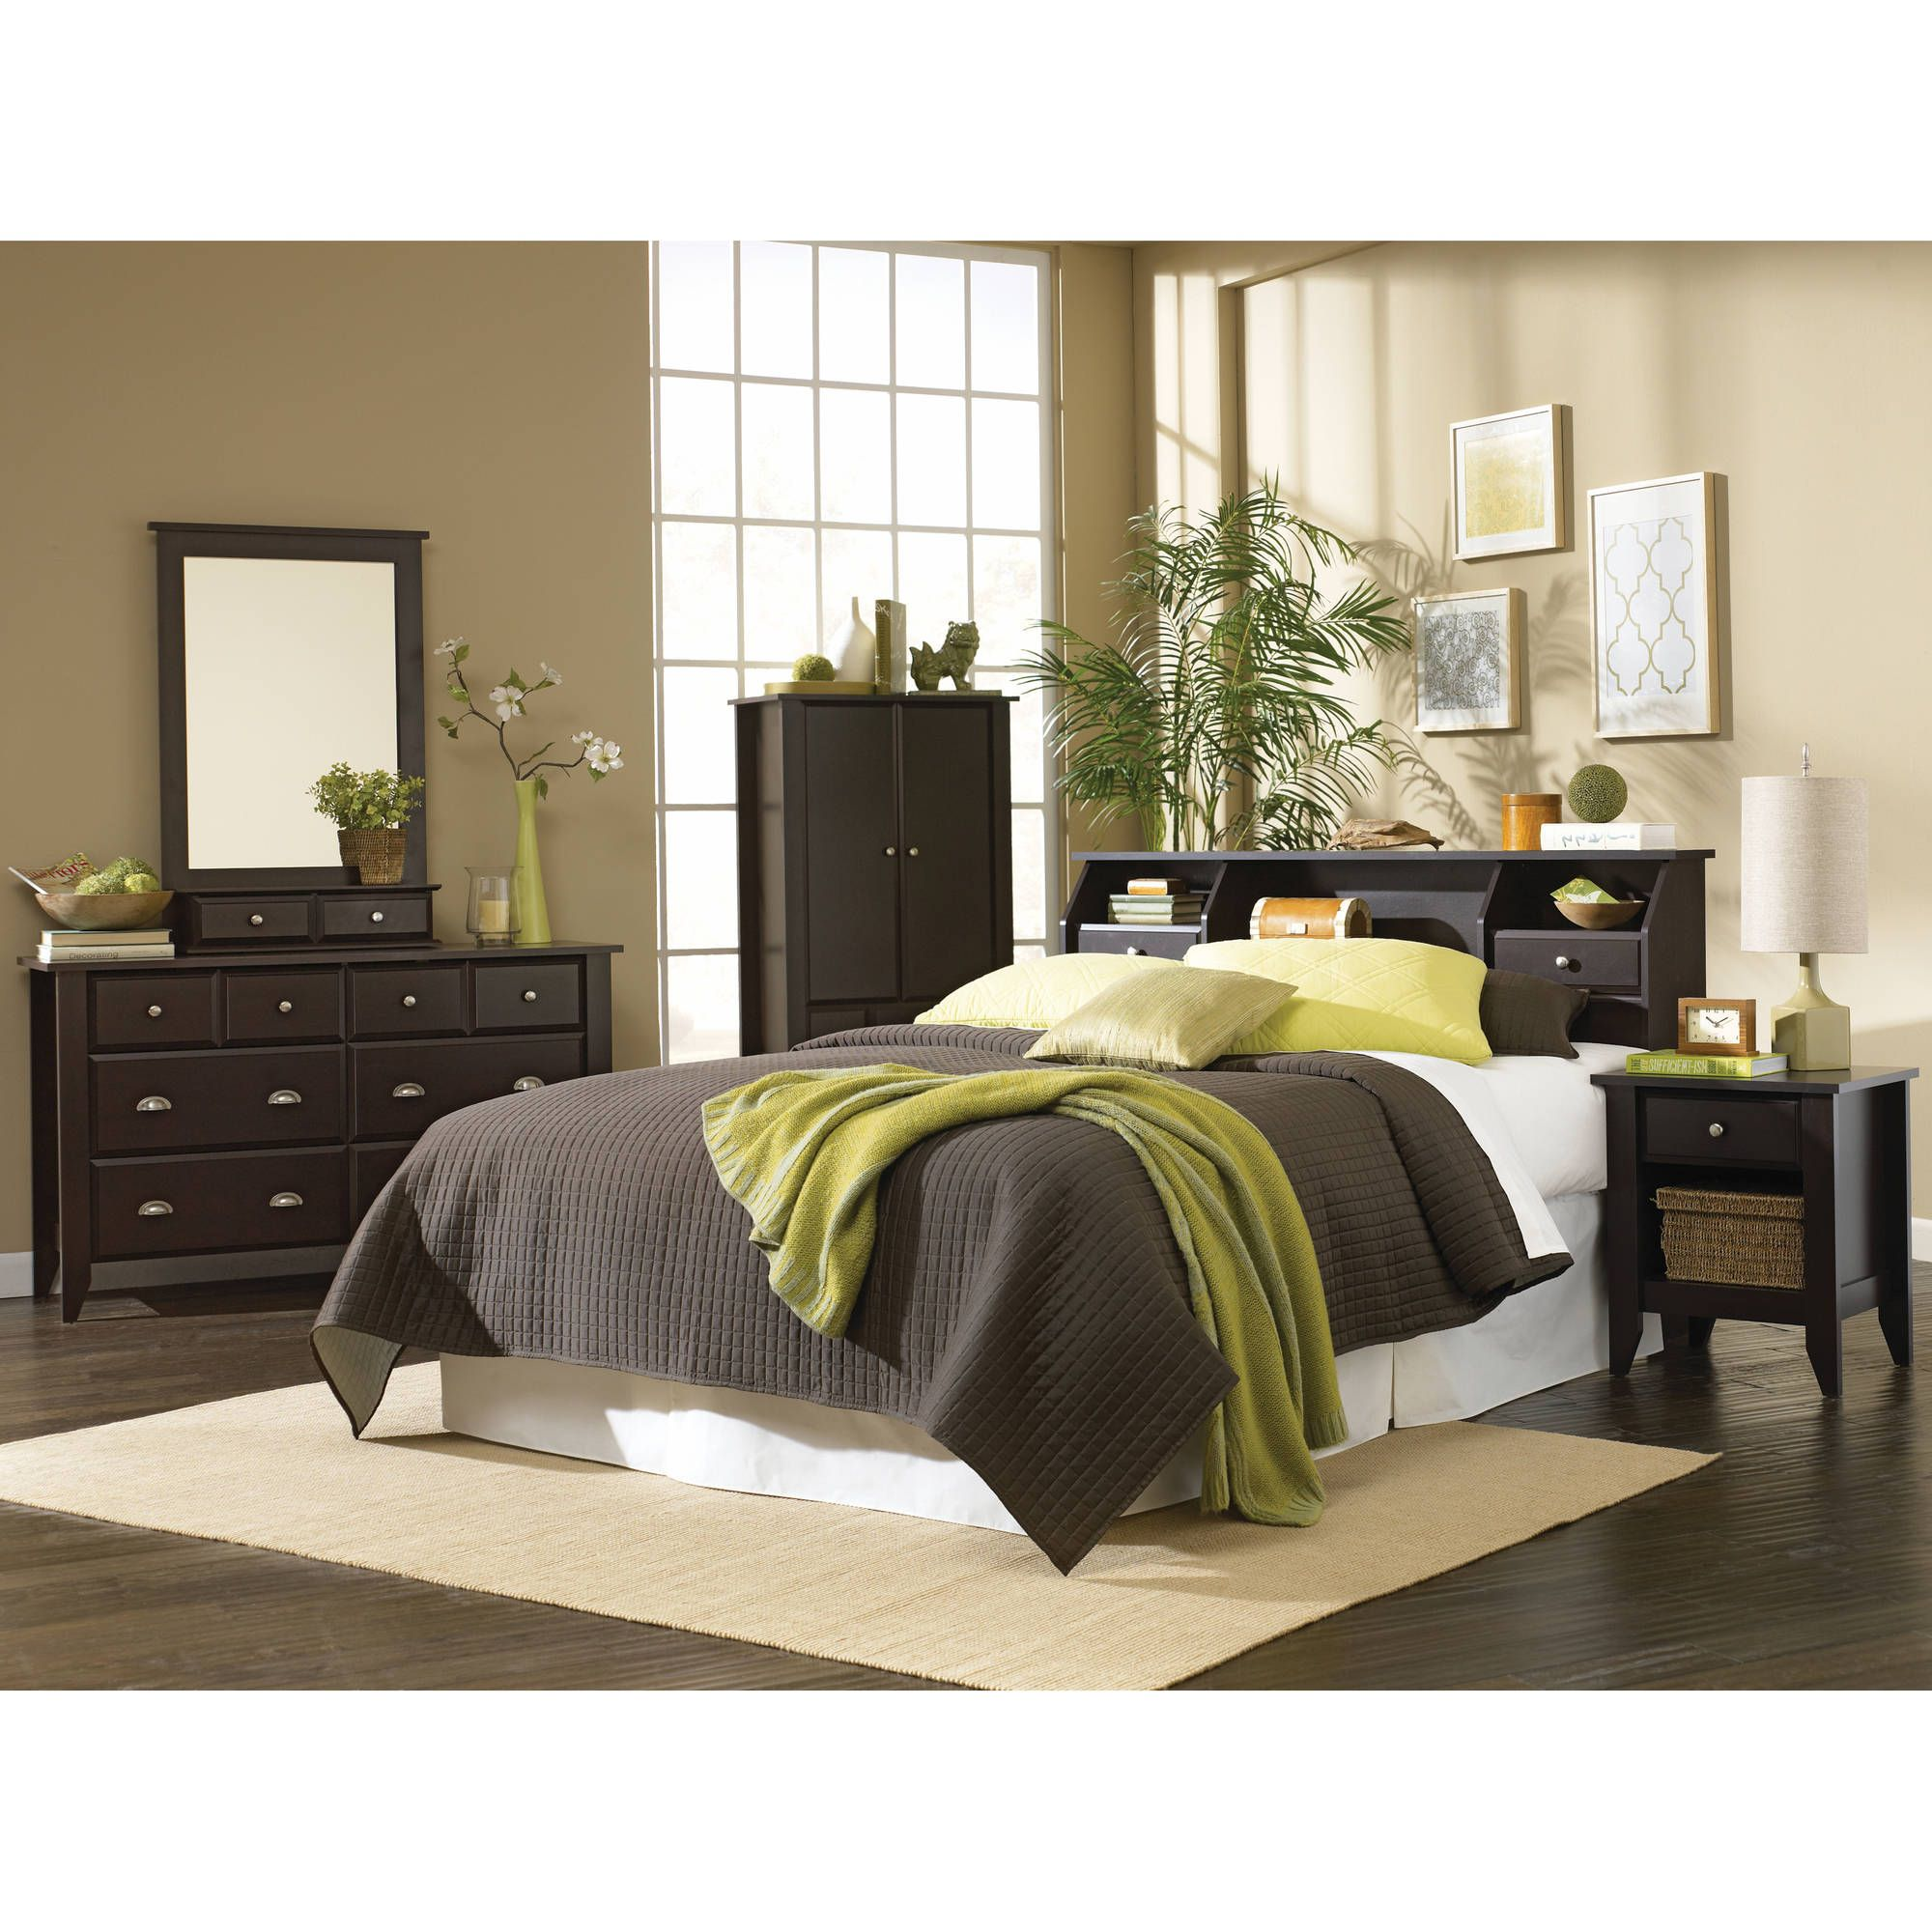 13 Smart Ideas How To Improve Walmart Bedroom Sets Furniture Applying The Types Of The Walmart Bedroom Sets Furniture Is An Important Thing To Do The Kinds Of Di 2020